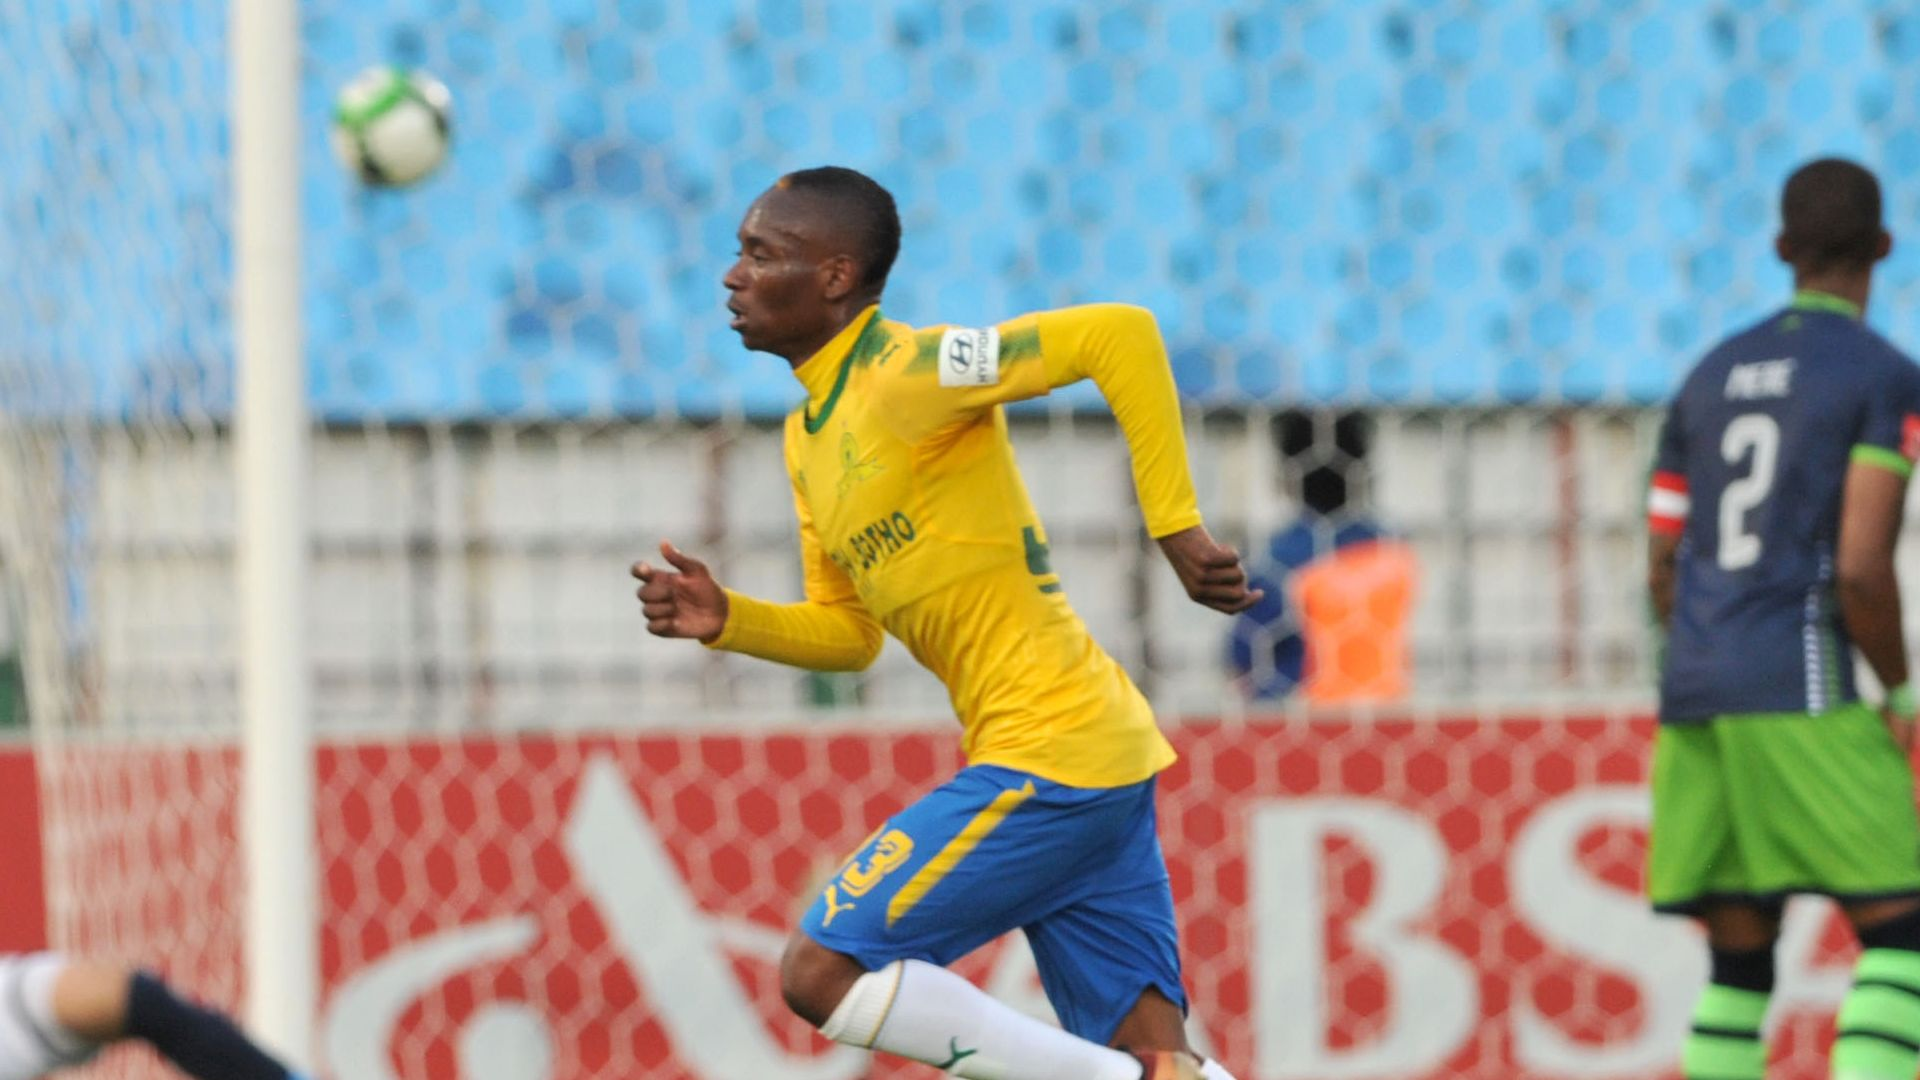 Mamelodi Sundowns - Wydad Casablanca Preview: Former African champions host reigning champs